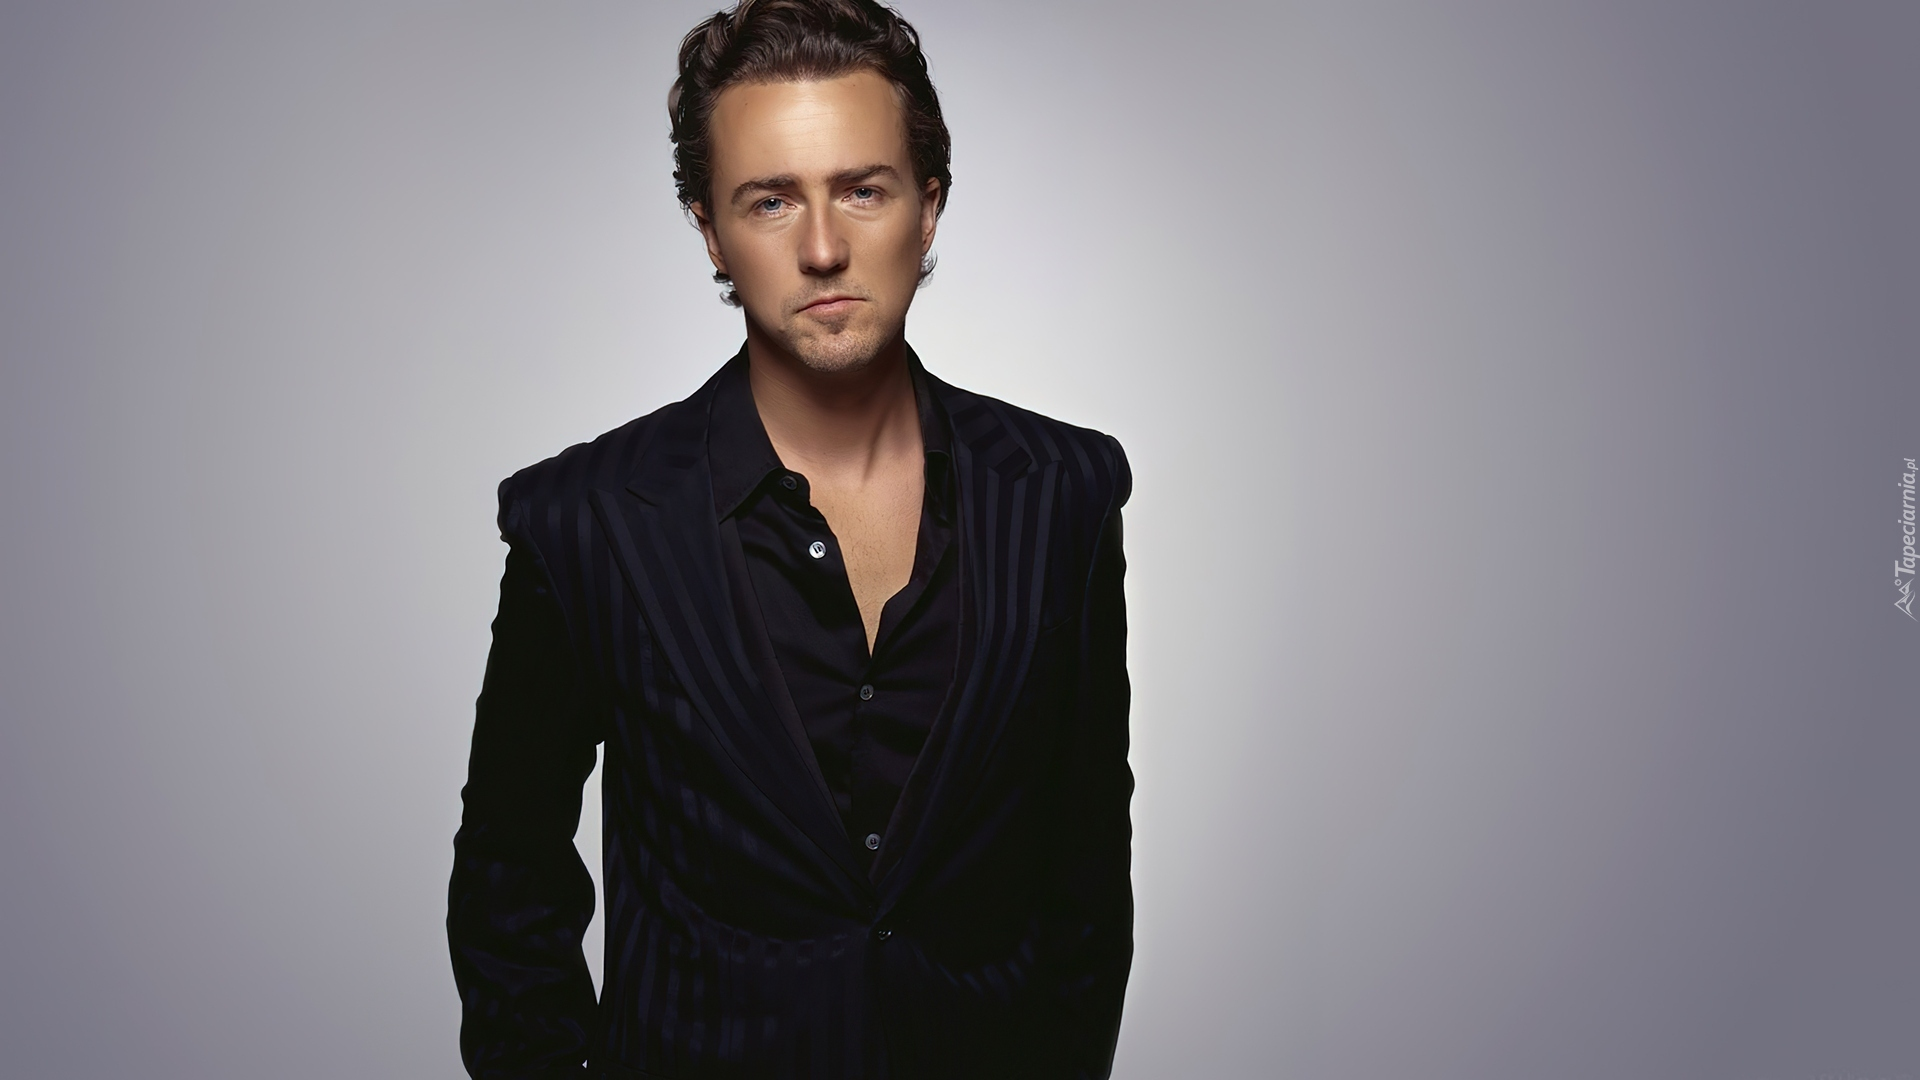 Edward Norton, Aktor